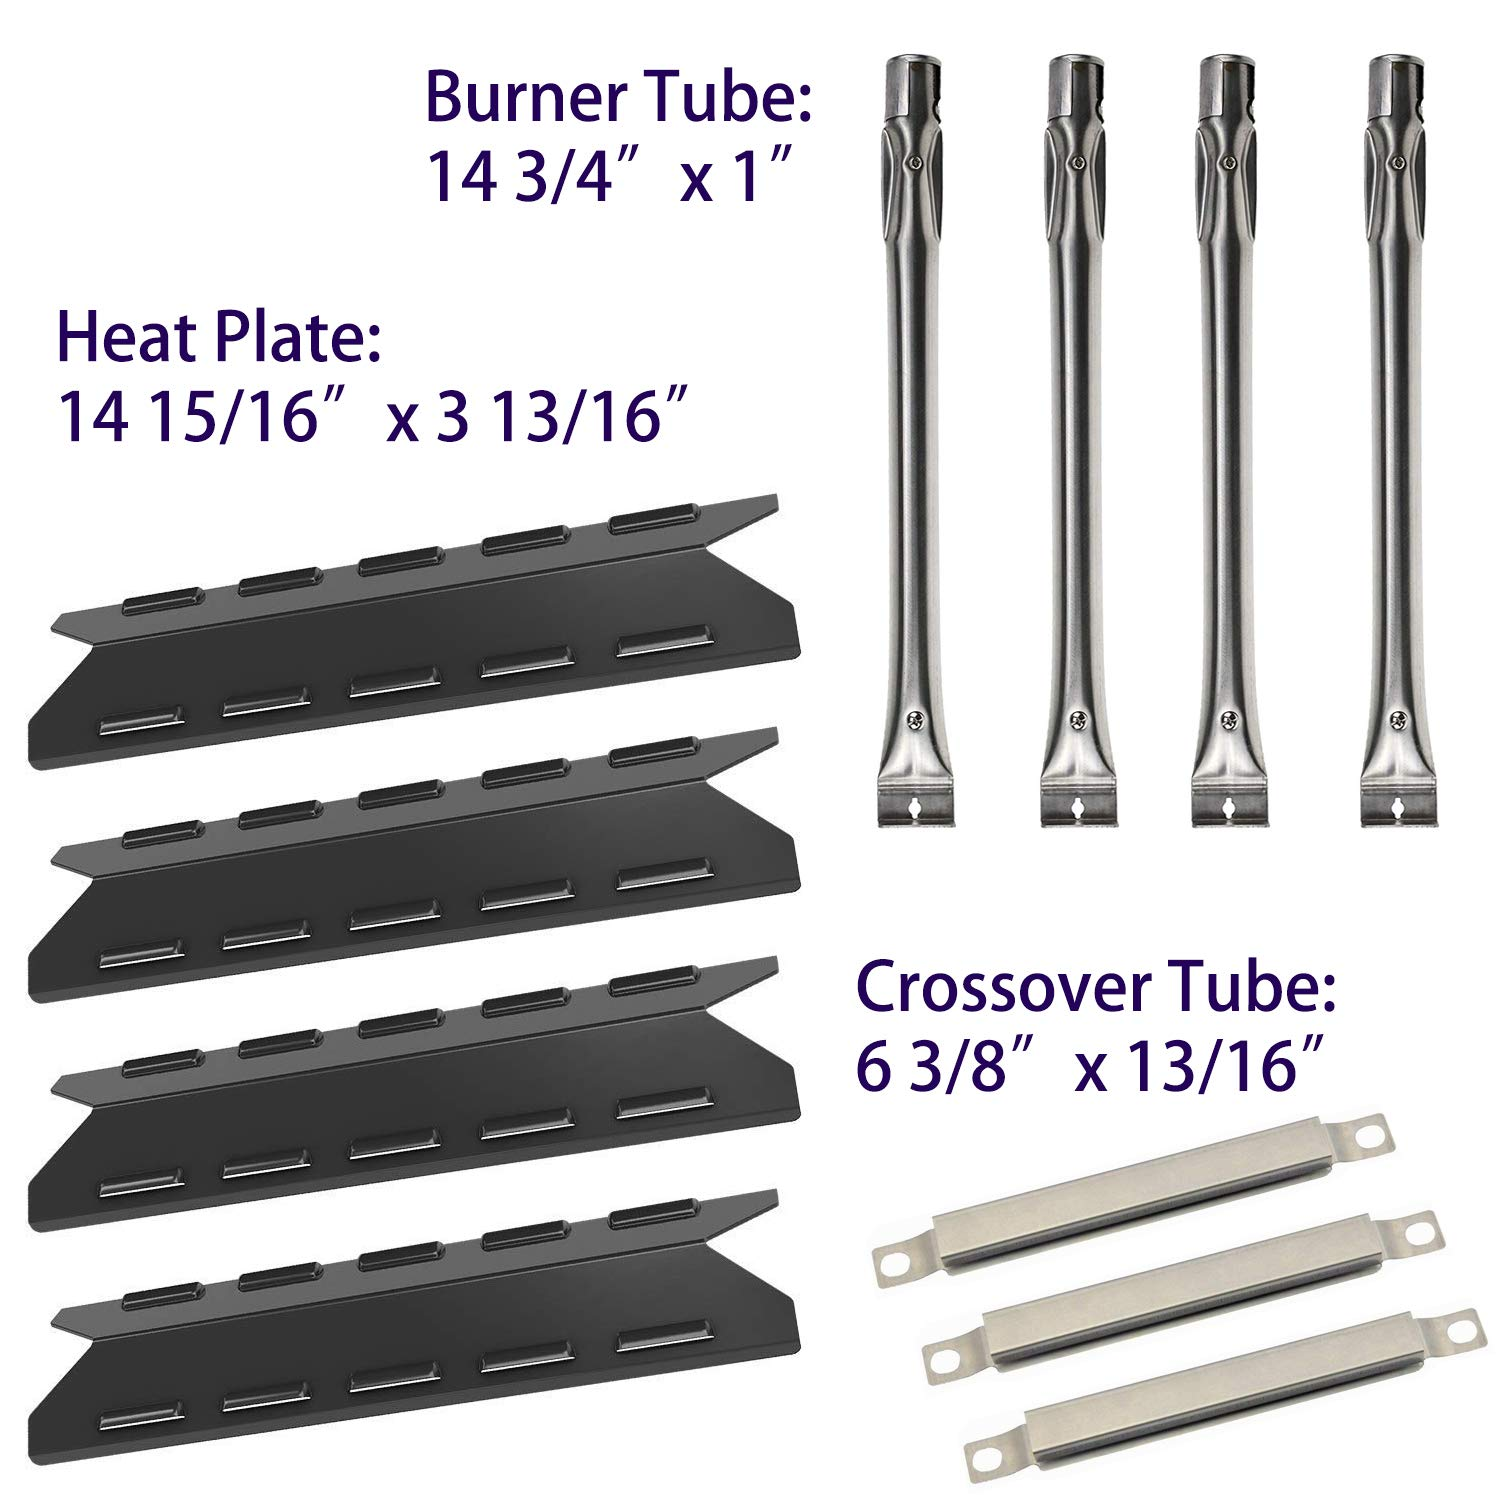 BBQ-Element Grill Heat Plate Tent Shield, Pipe Burner Tubes and Crossover Tube Replacement Kit for Kenmore 146.47223610, 146.46372610, 146.46365610, 146.46366610 Models. by BBQ-Element